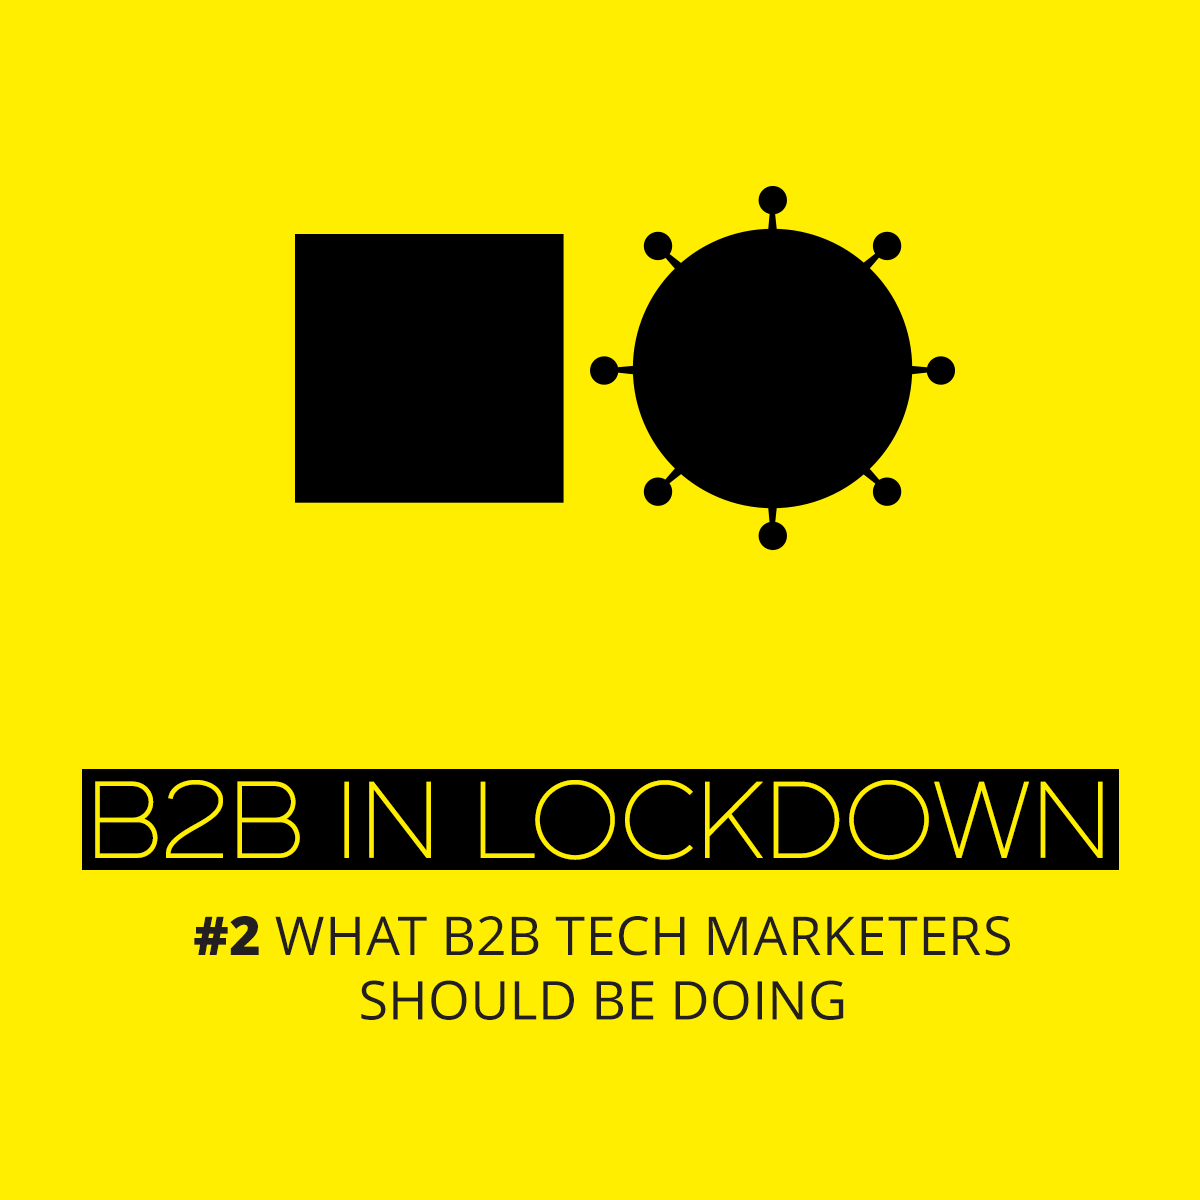 B2B IN LOCKDOWN #2: B2B TECH MARKETING - Stay safe and keep carrying on